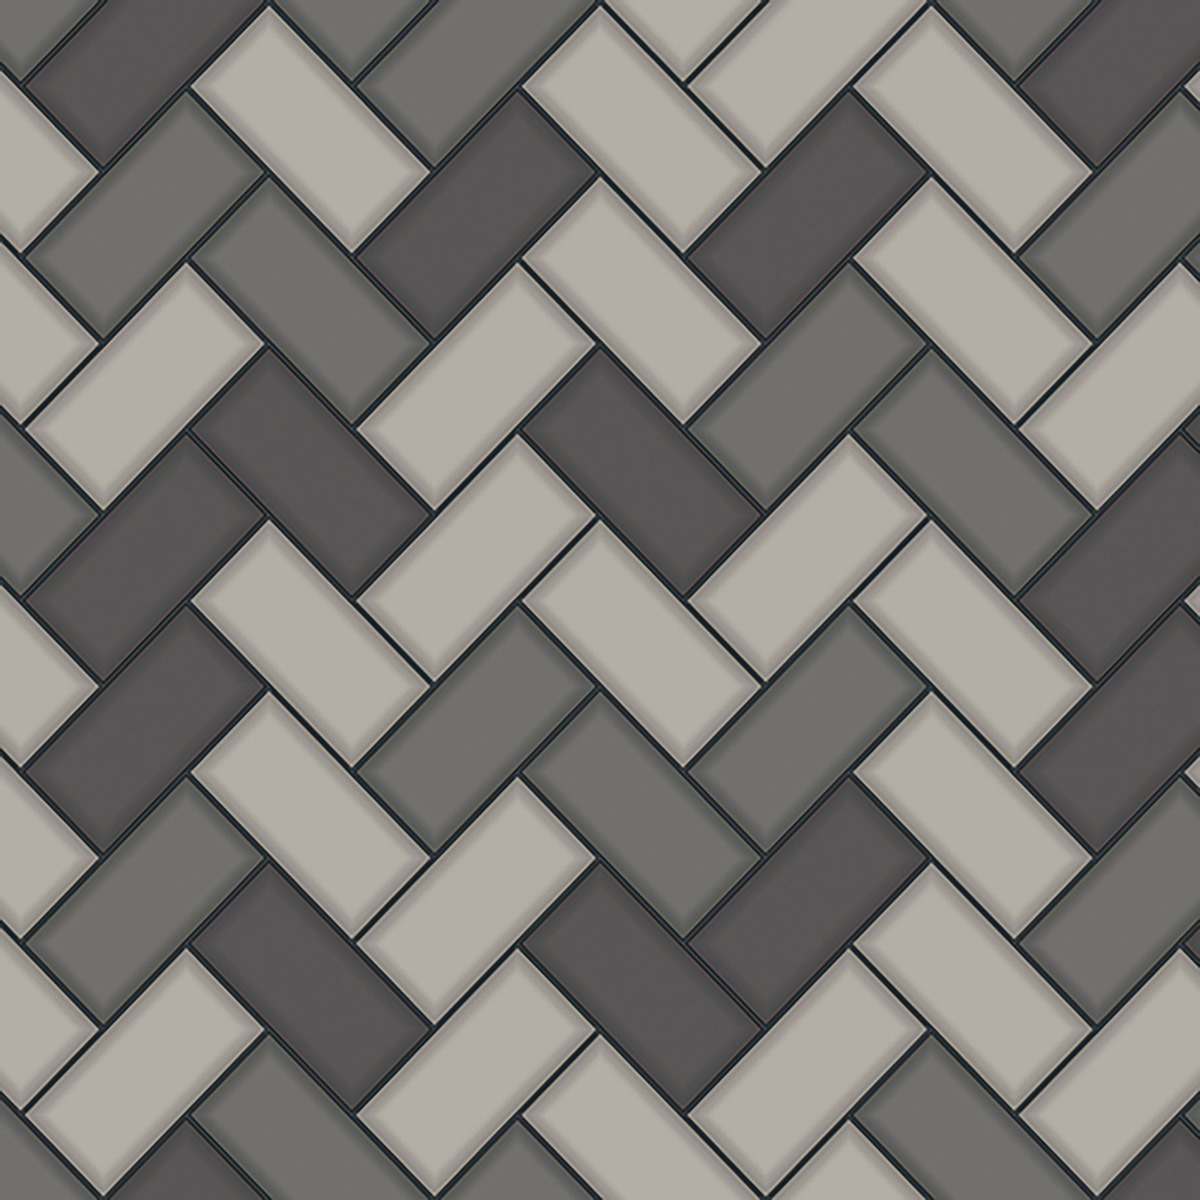 Tiling on a Roll Chevron Tile Wallpaper - Charcoal Holden 89302